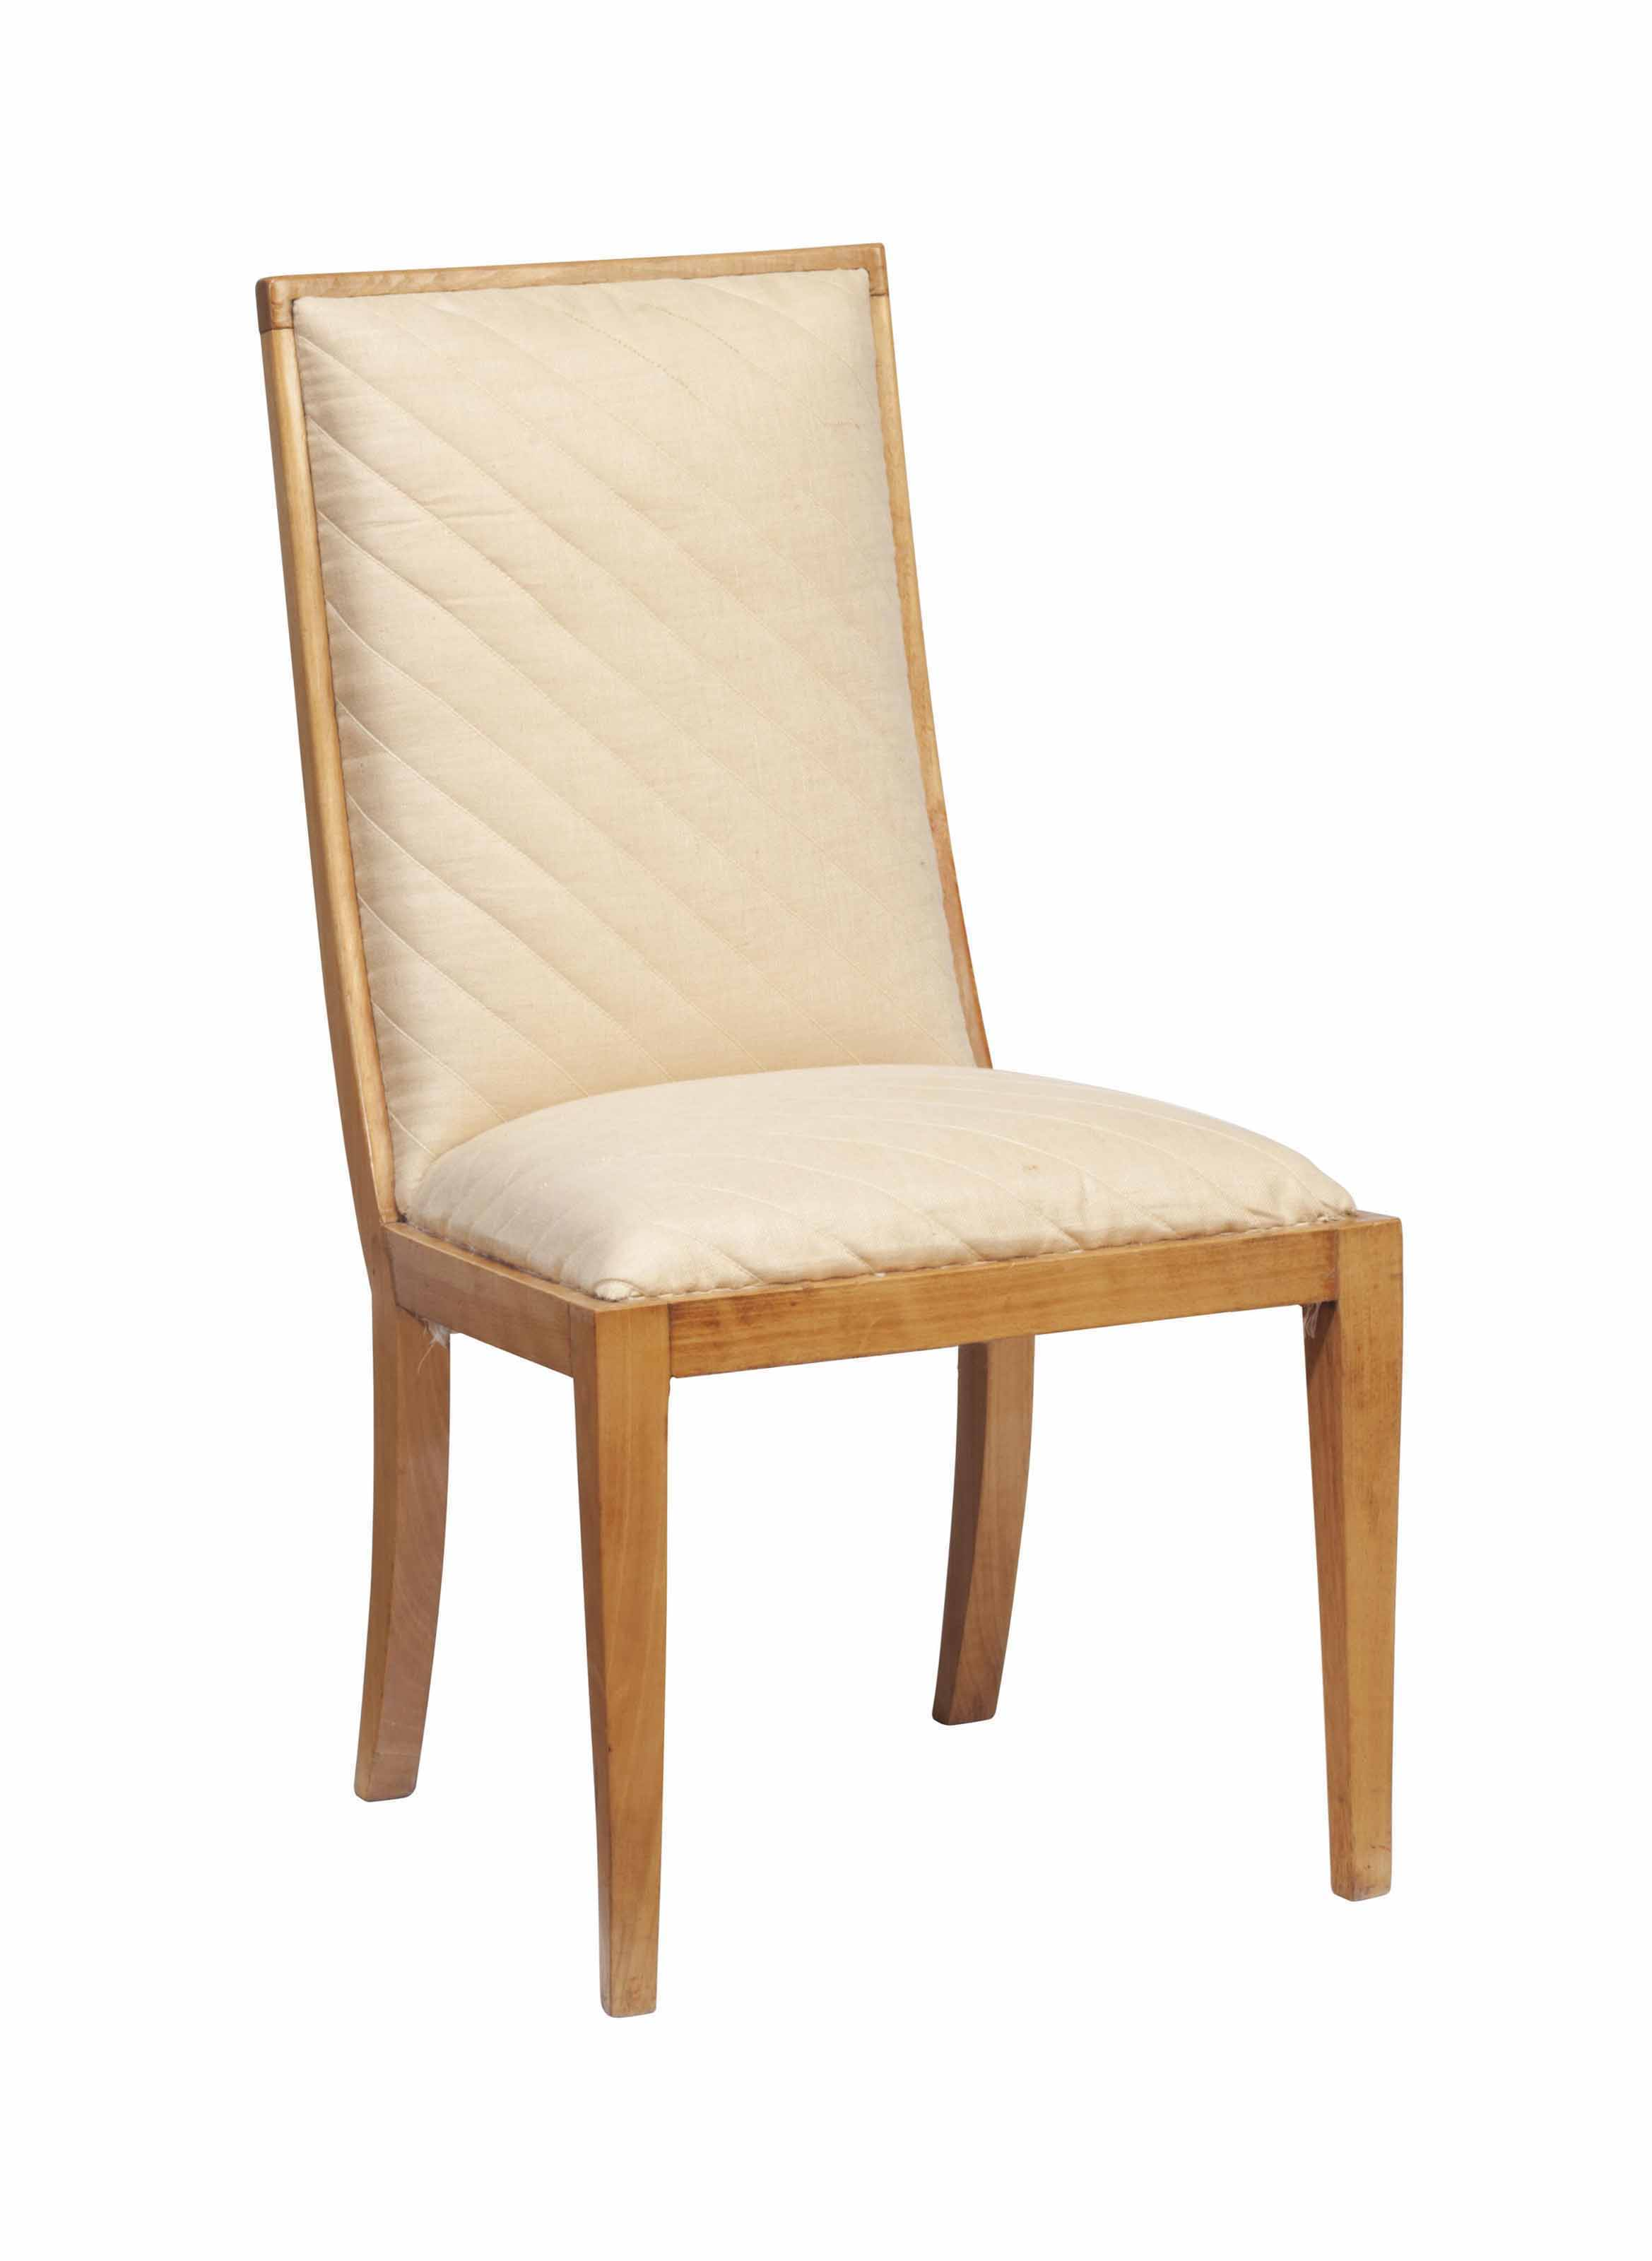 A FRENCH SYCAMORE LOW CHAIR